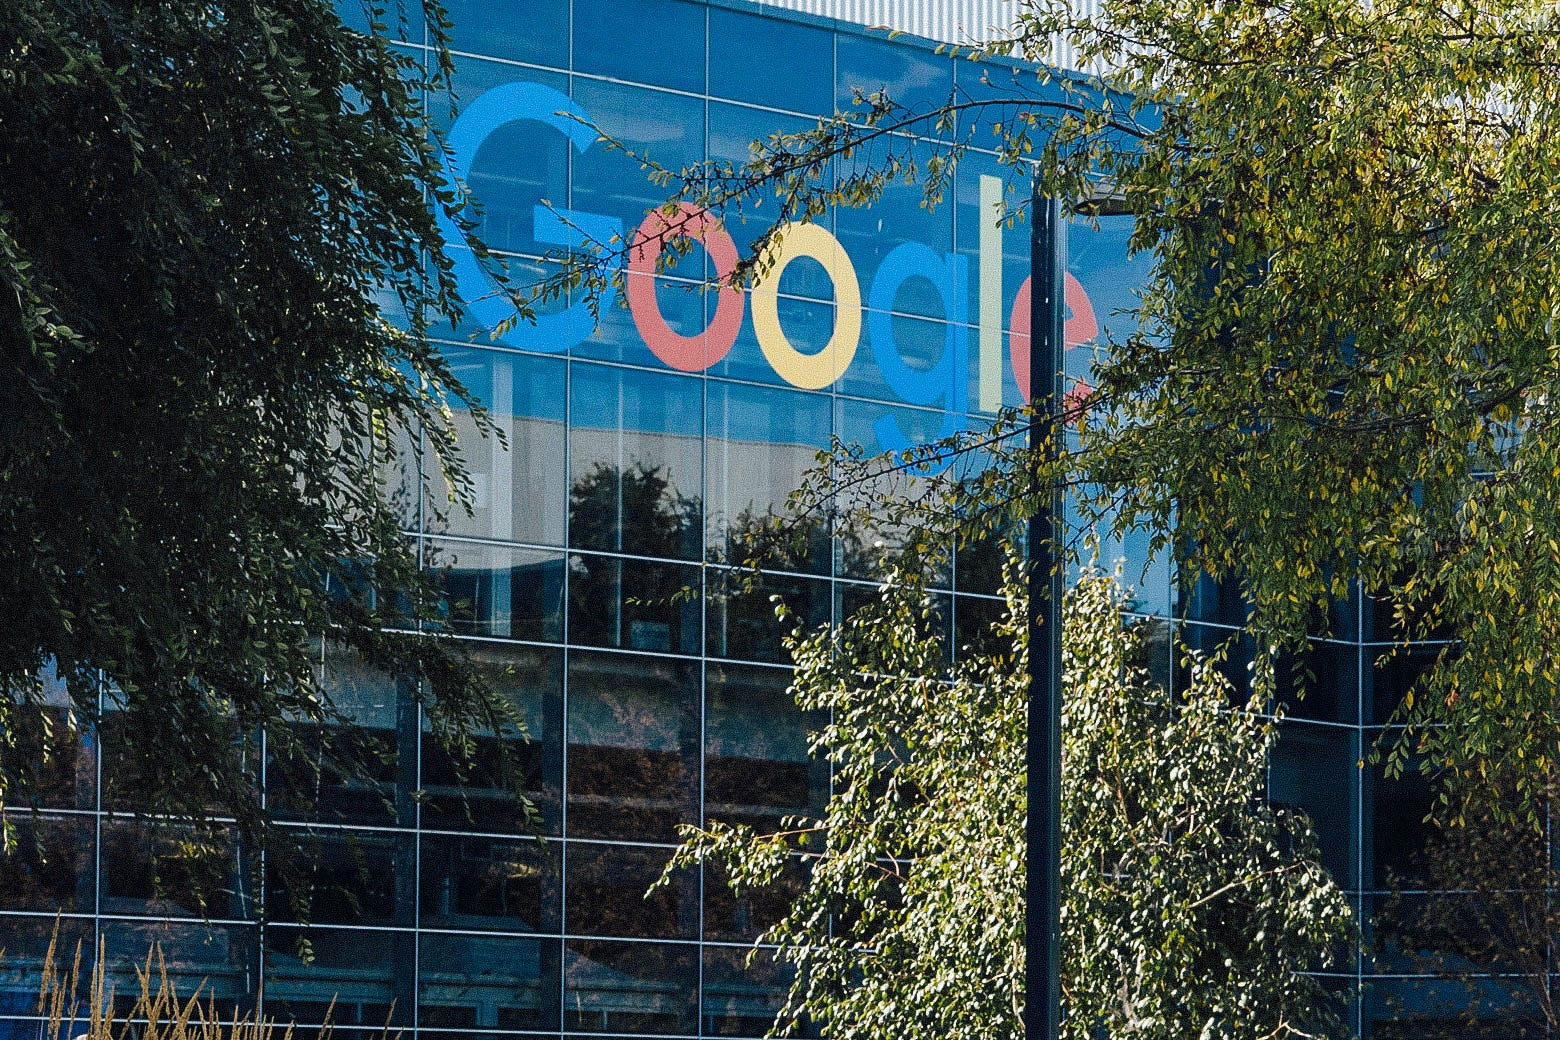 The Google campus in Mountain View, California, was one of the sites of employee protests on May 1, 2019.